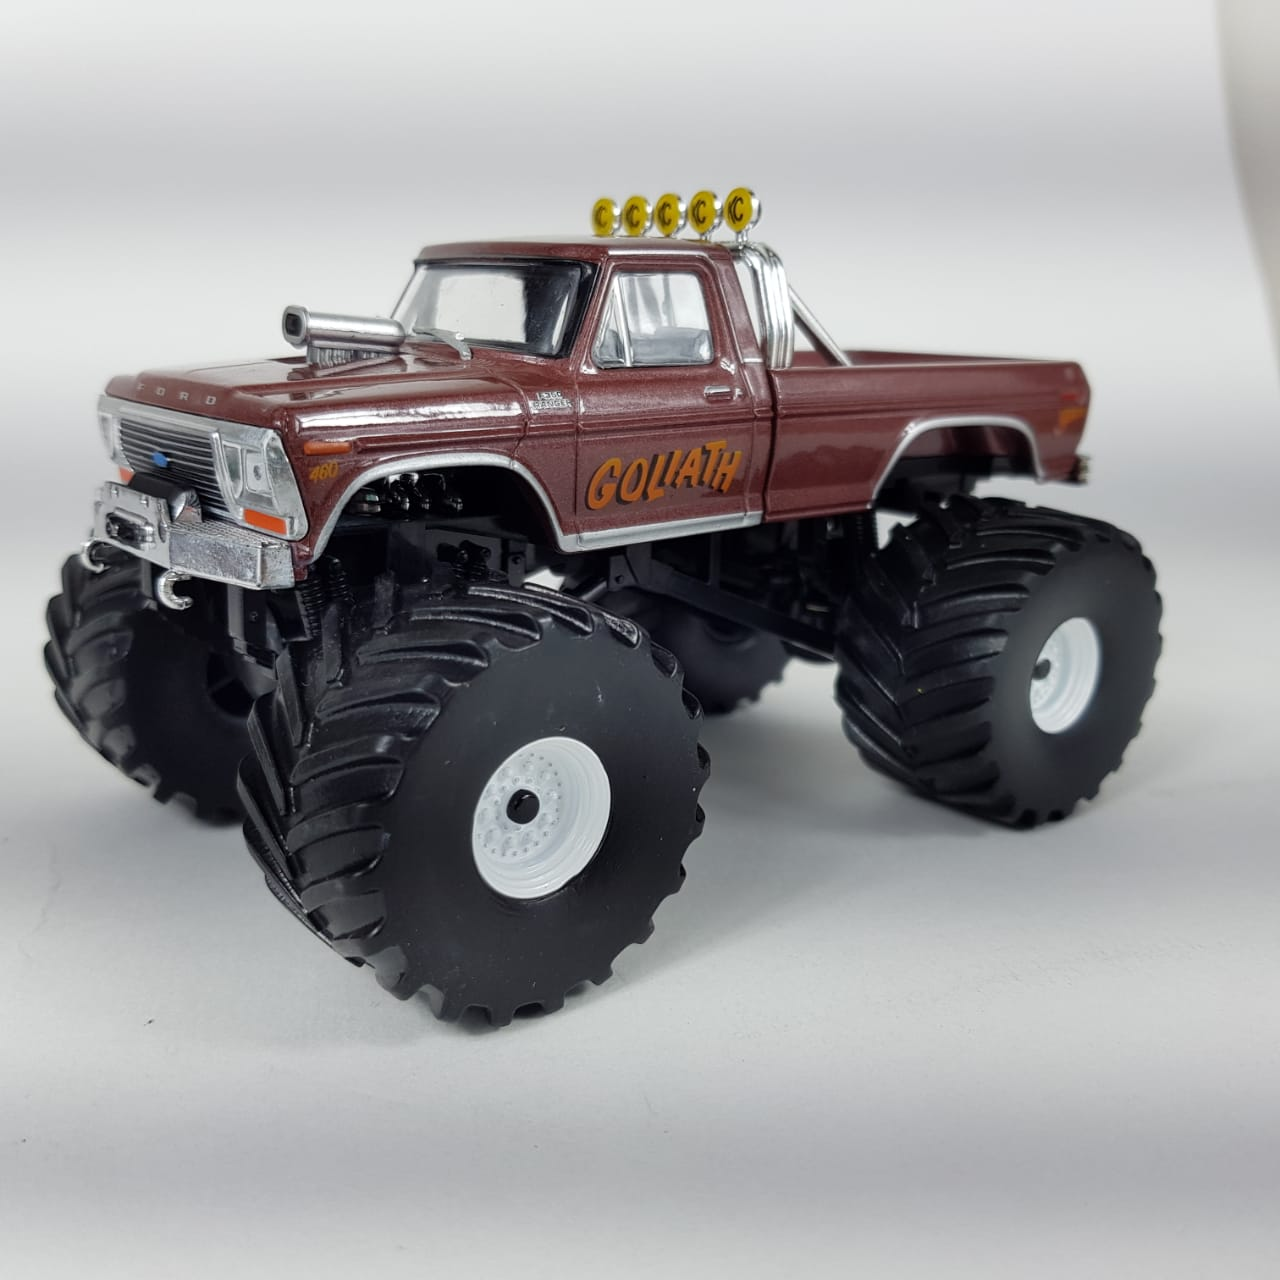 Miniatura Ford F-250 1979 Goliath Tow Truck 1/43 Greenlight